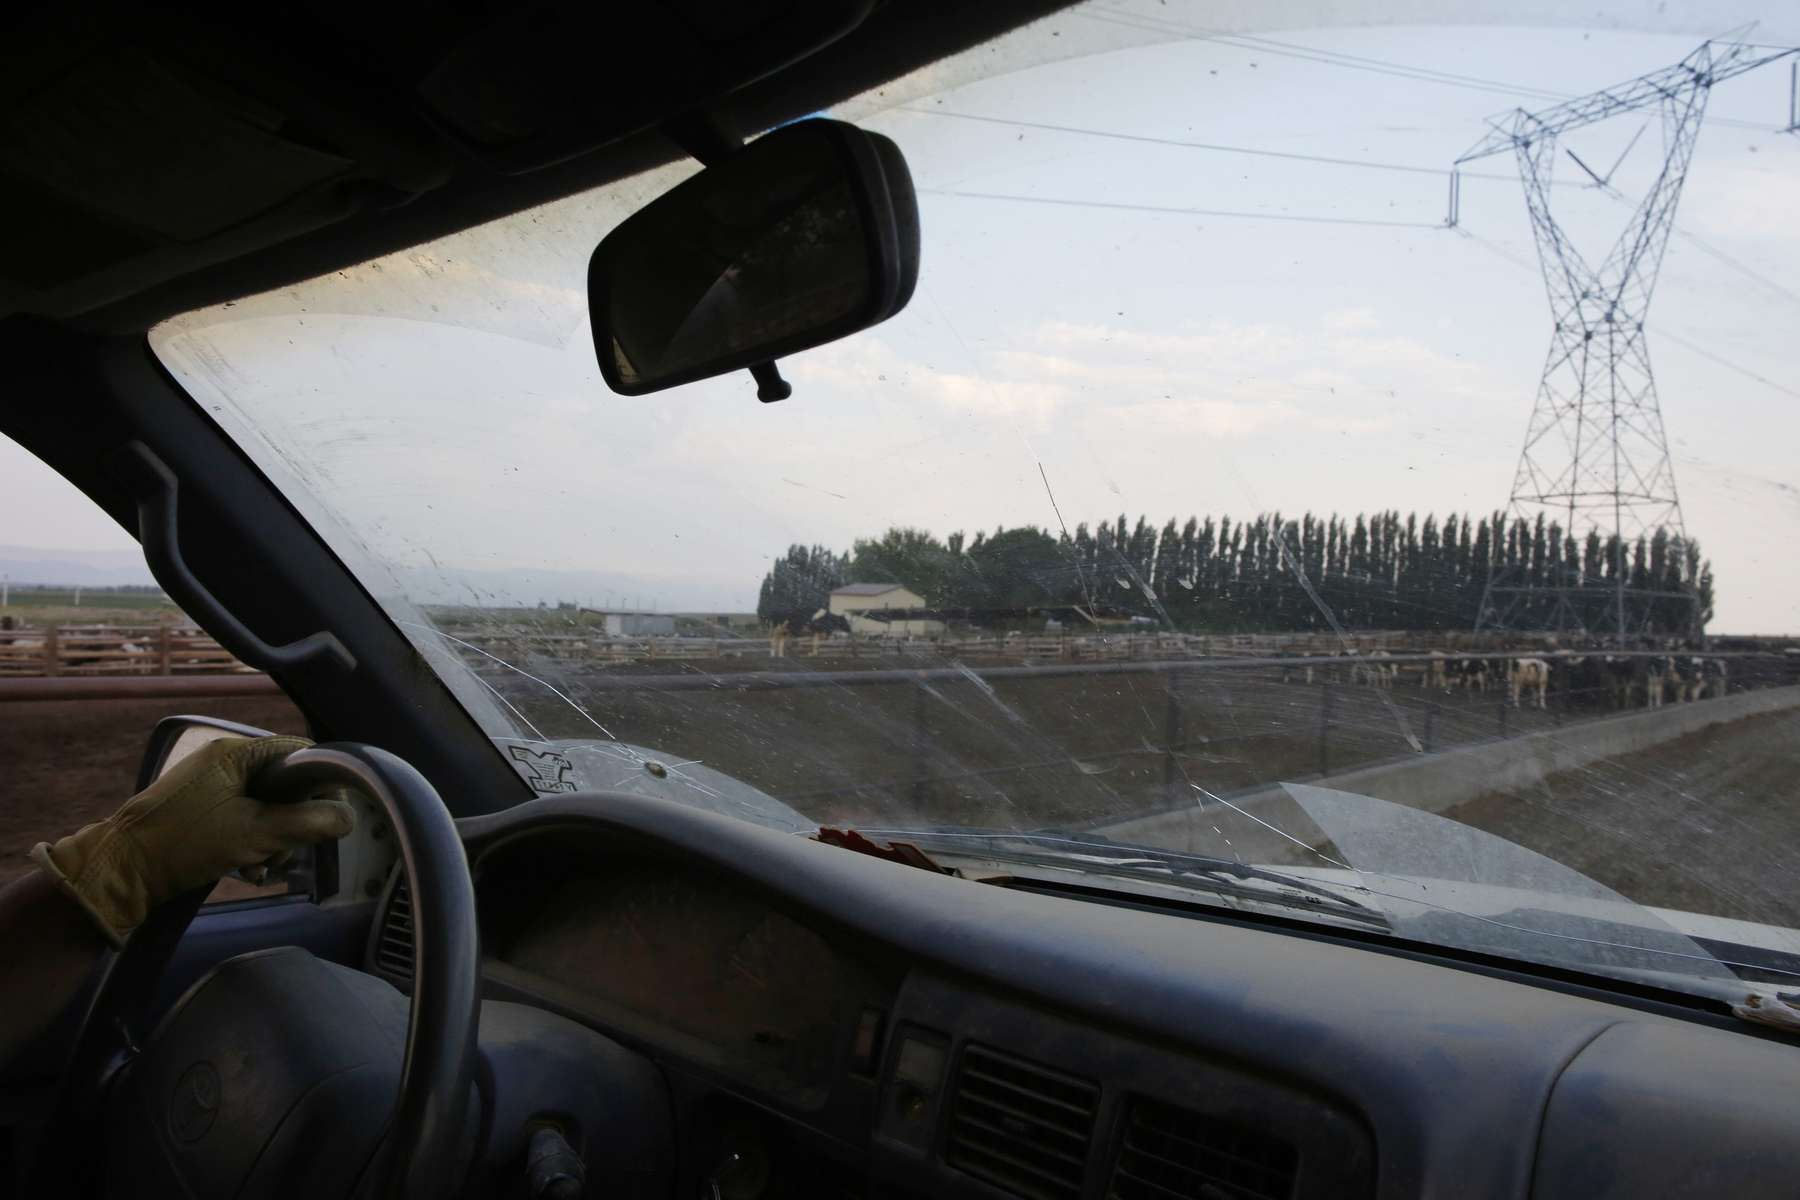 "Eloy Cervantes, a cattle rancher and father of four, drives a truck as he makes his rounds feeding cattle at his job in Mattawa, Washington August 23, 2013. Cervantes, who is not a United States citizen, has staked his family's future on this remote farming city in America's apple country — a city riddled by troubles he wishes he could help fix. Teen pregnancy. Grating poverty. And violent gangs that shot bullet holes into his neighbors' trailers. ""If I could do something,"" Cervantes, 40, said of the troubles in town, ""you can be sure that I would."""